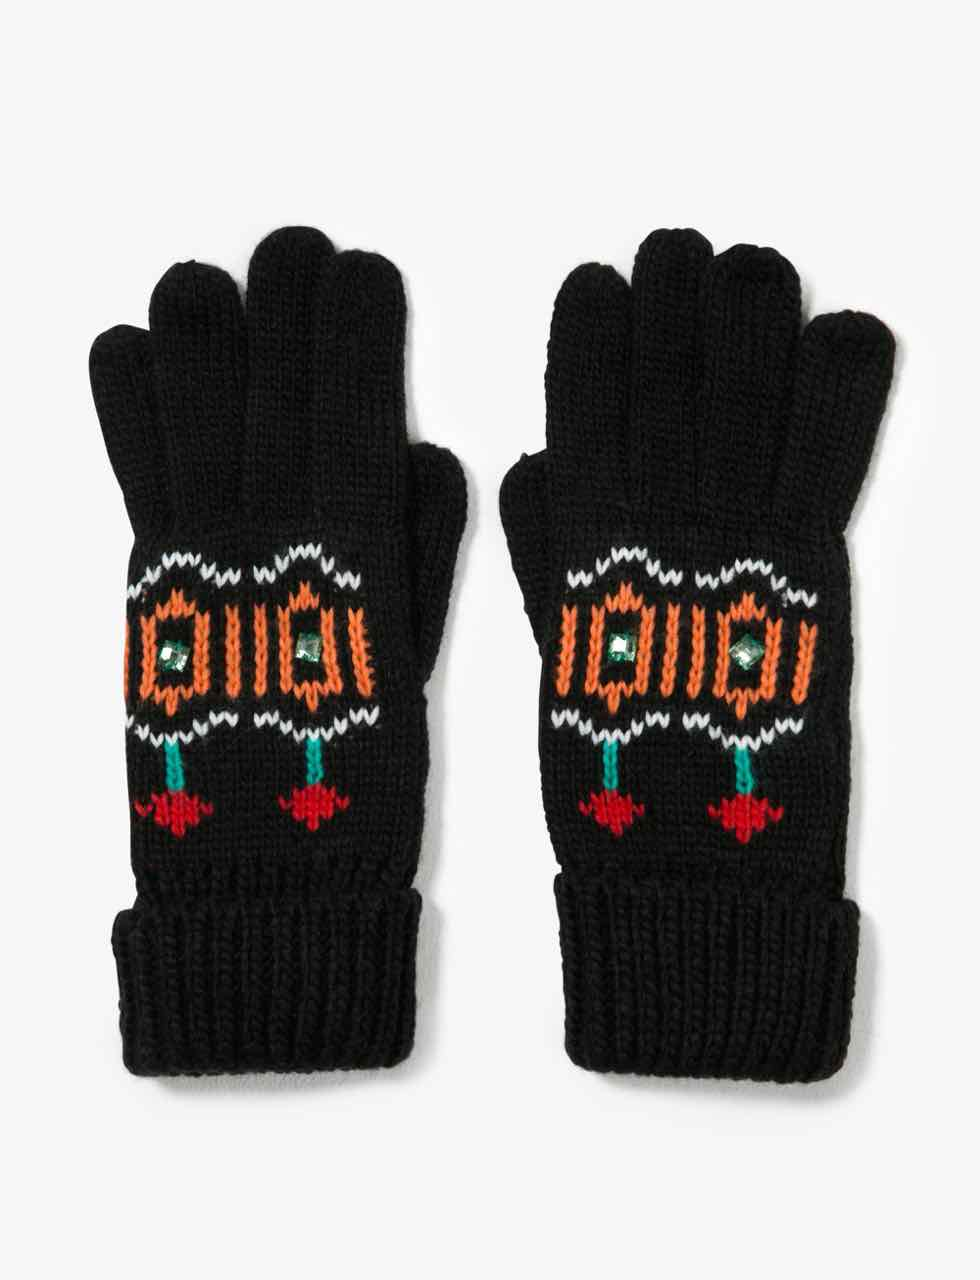 67A58M3_2000-Desigual-Gloves-Eternal Buy Online